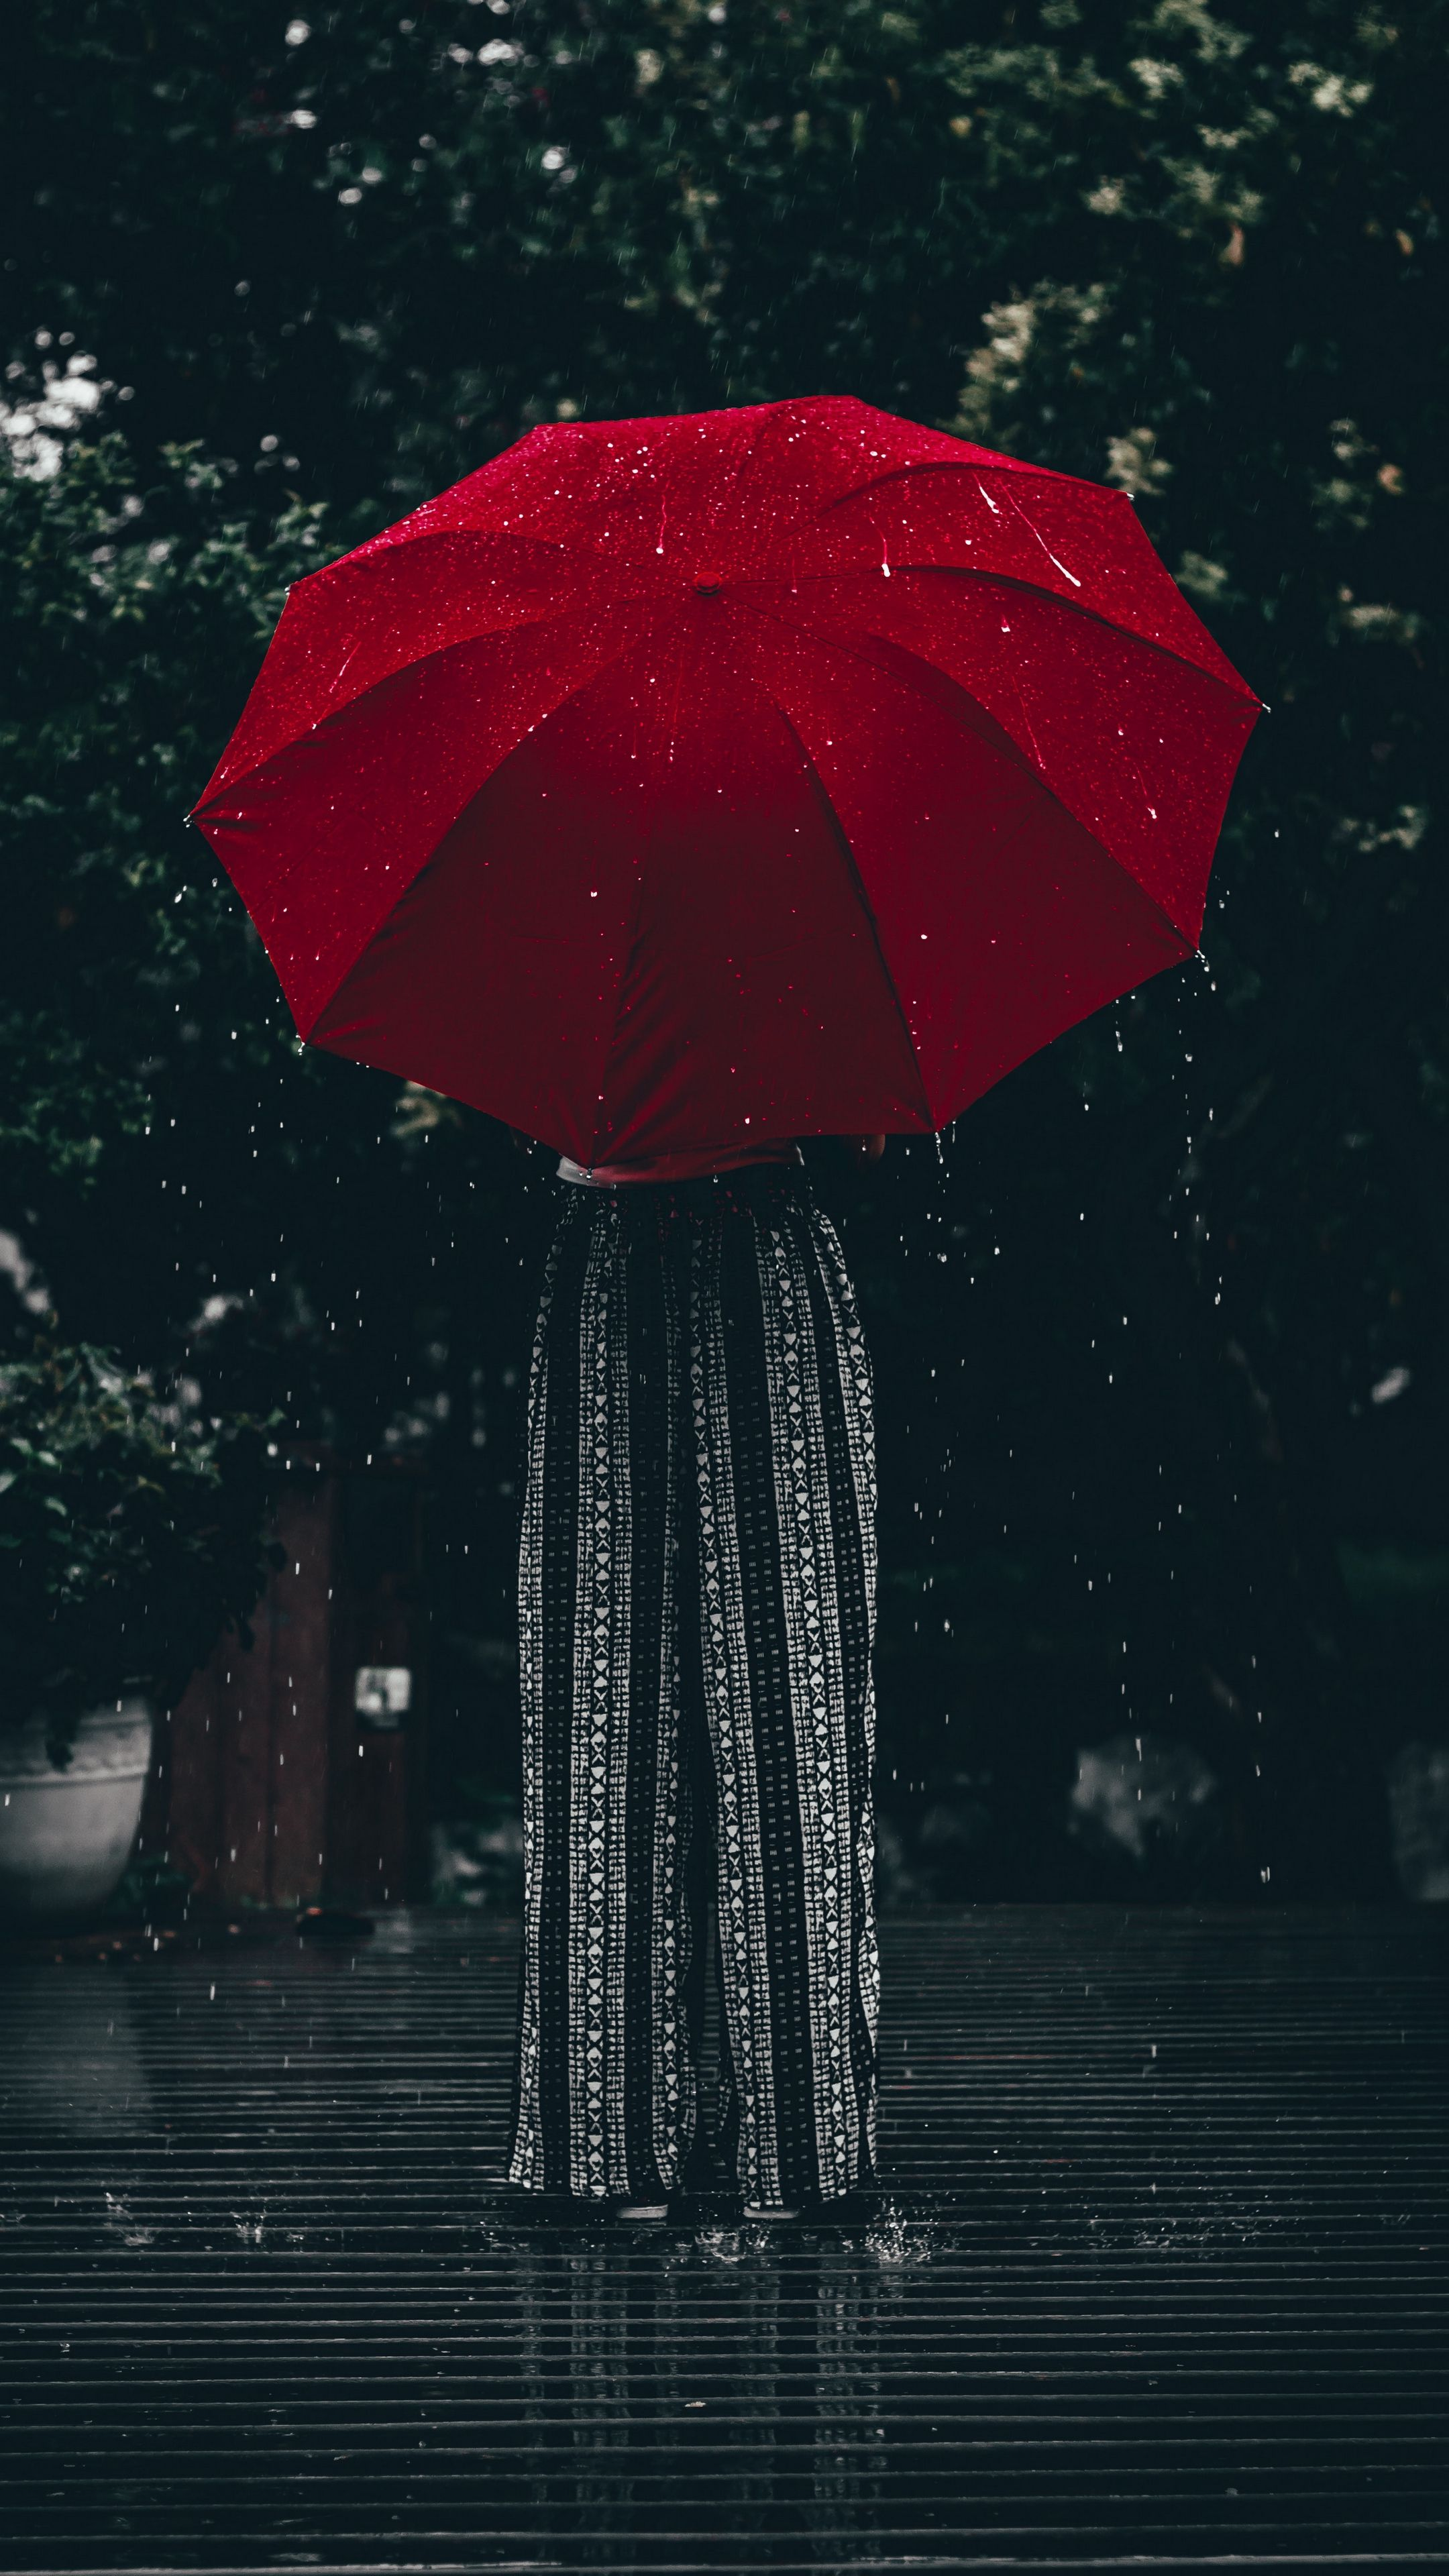 Emotions Umbrella Red Girl Android Wallpapers 4k Hd Red Umbrella Umbrella Photography Red Pictures